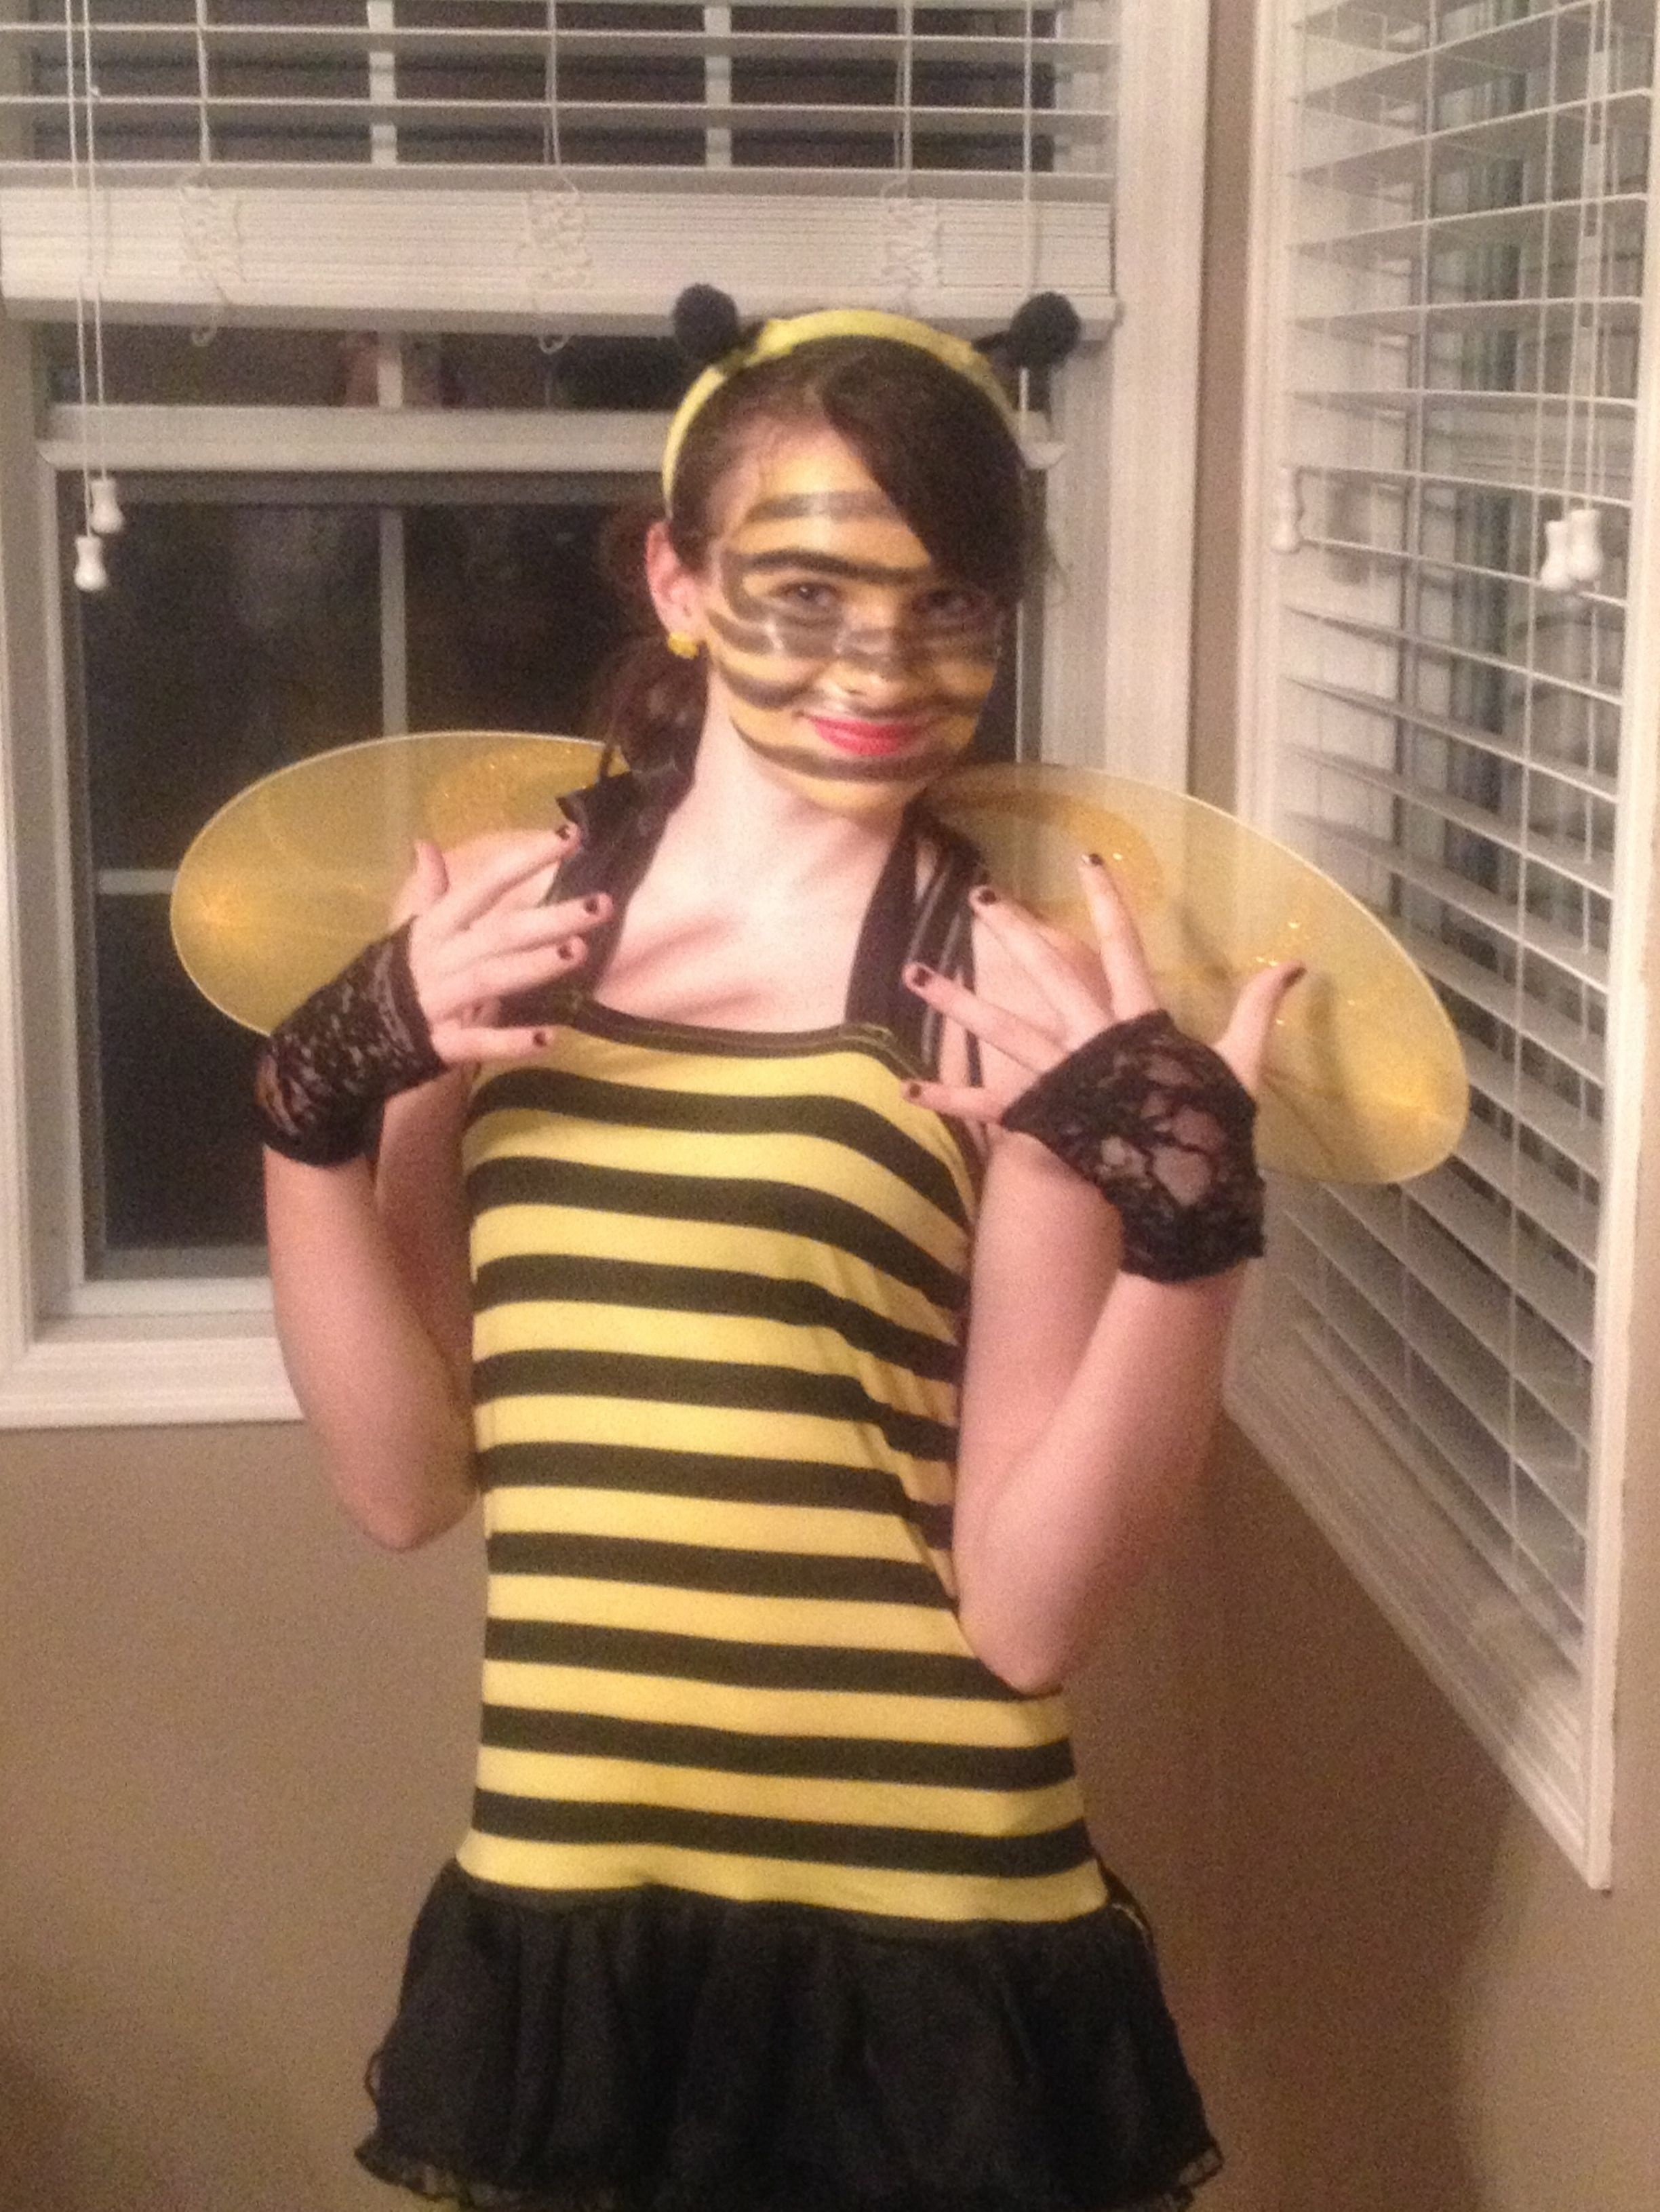 Black dress up gloves - This Is My Daughter Dressed Up As A Little Bumble Bee With A Dress